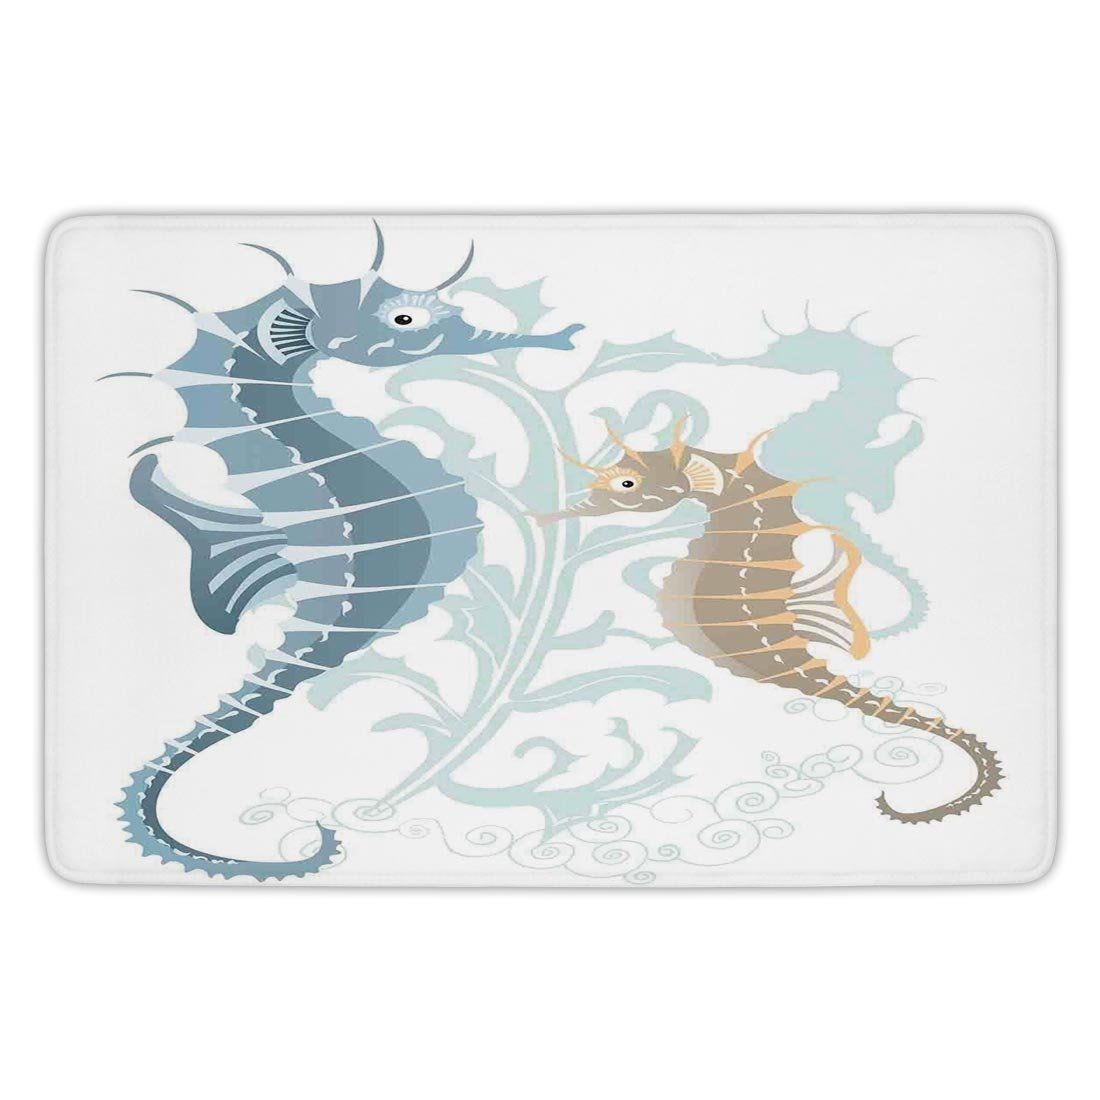 Bathroom Bath Rug Kitchen Floor Mat Carpet,Animal Decor,Pair of Little and Big Fishes in Soft Tones Featured Design Tropical Creatures,Blue Cream,Flannel Microfiber Non-slip Soft Absorbent